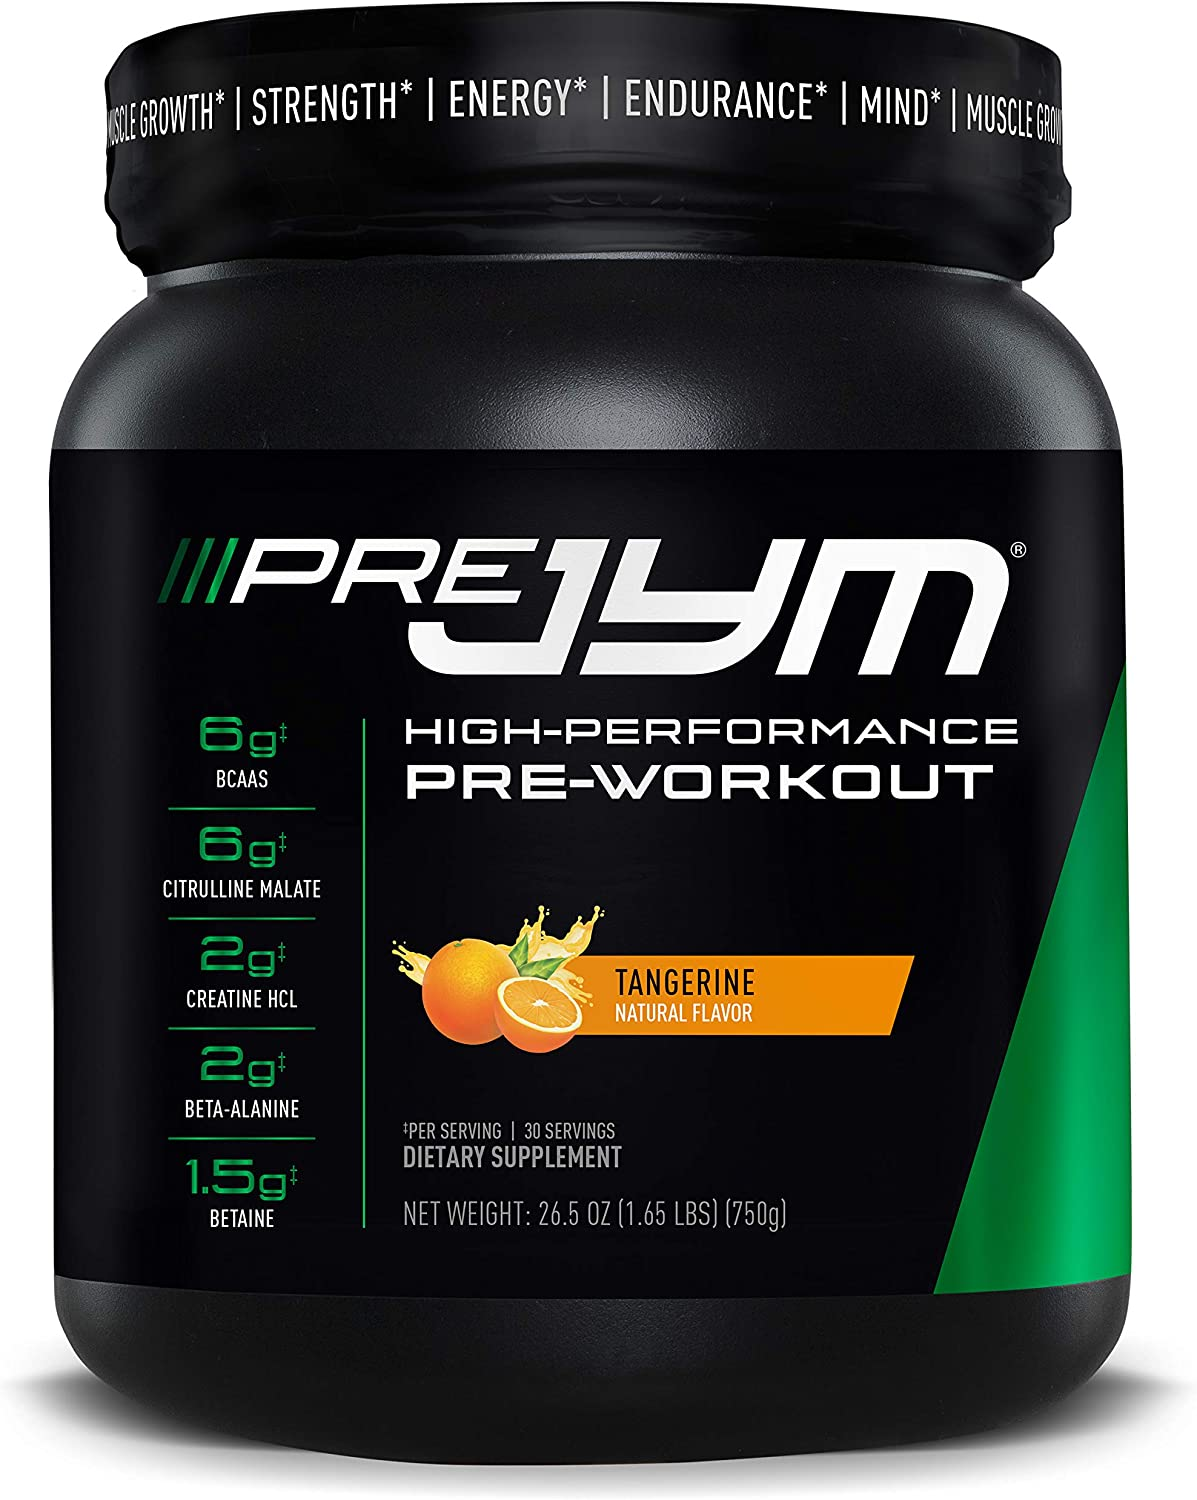 Pre JYM Pre Workout Powder - BCAAs, Creatine HCI, Citrulline Malate, Beta-Alanine, Betaine, and More